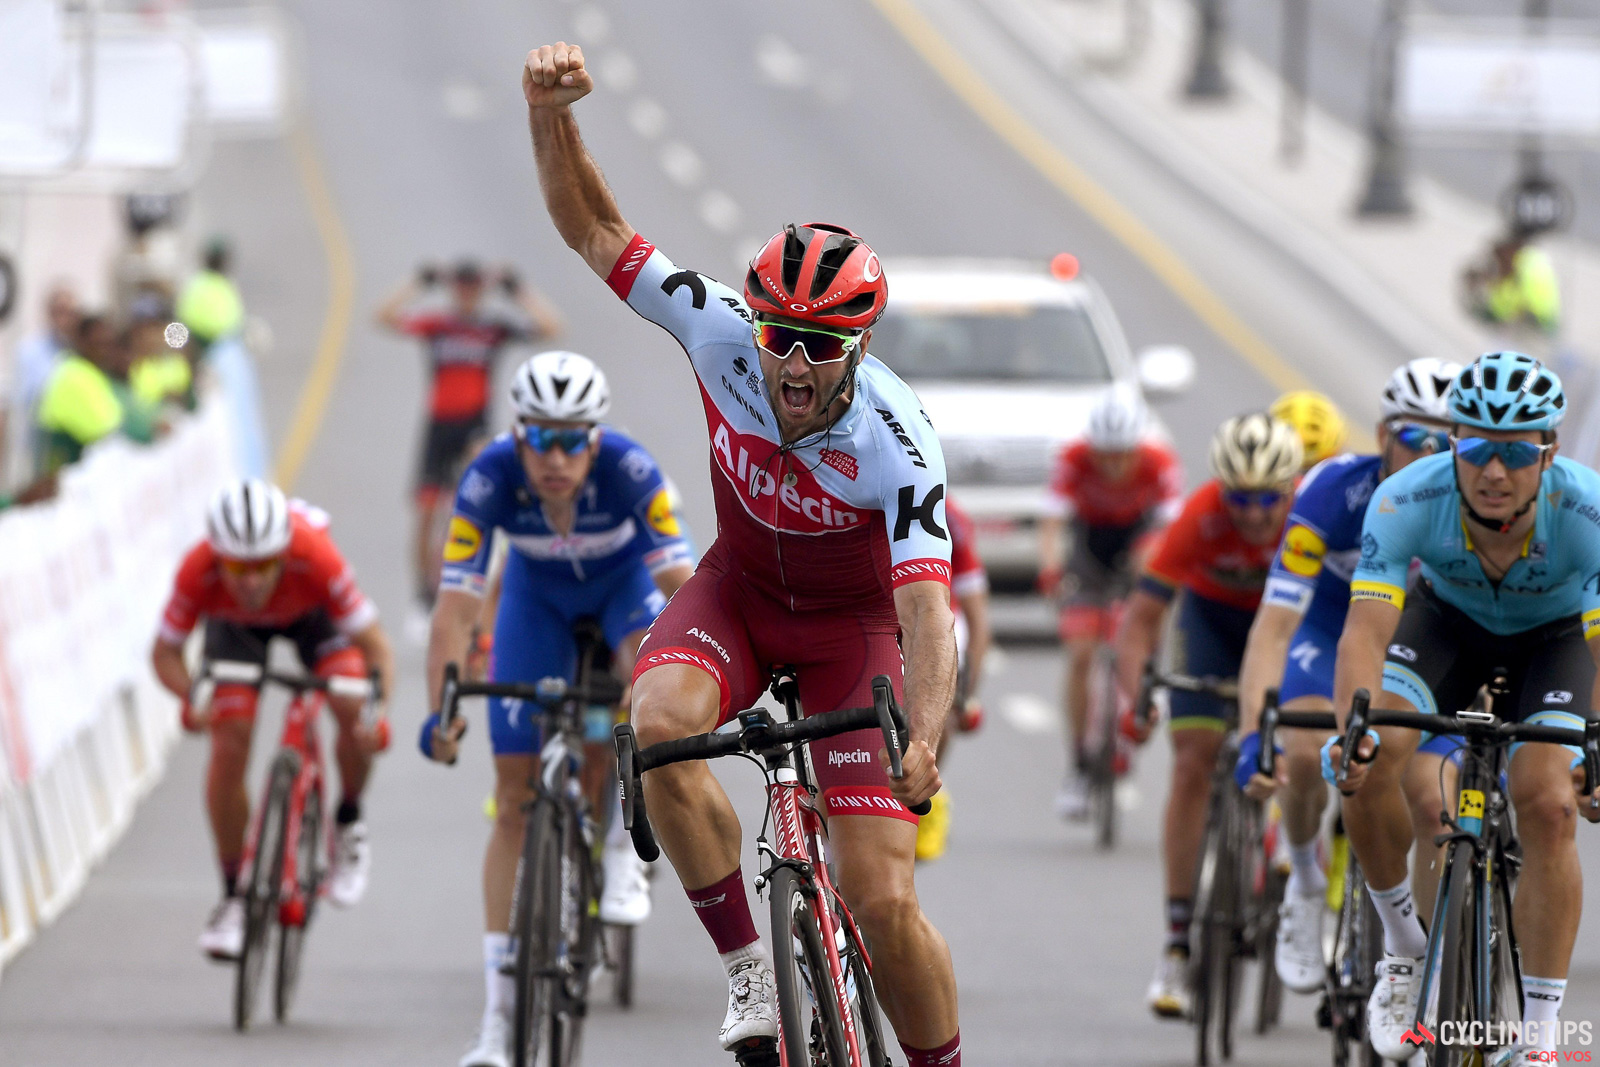 Nathan Haas wins stage 2 of Tour of Oman